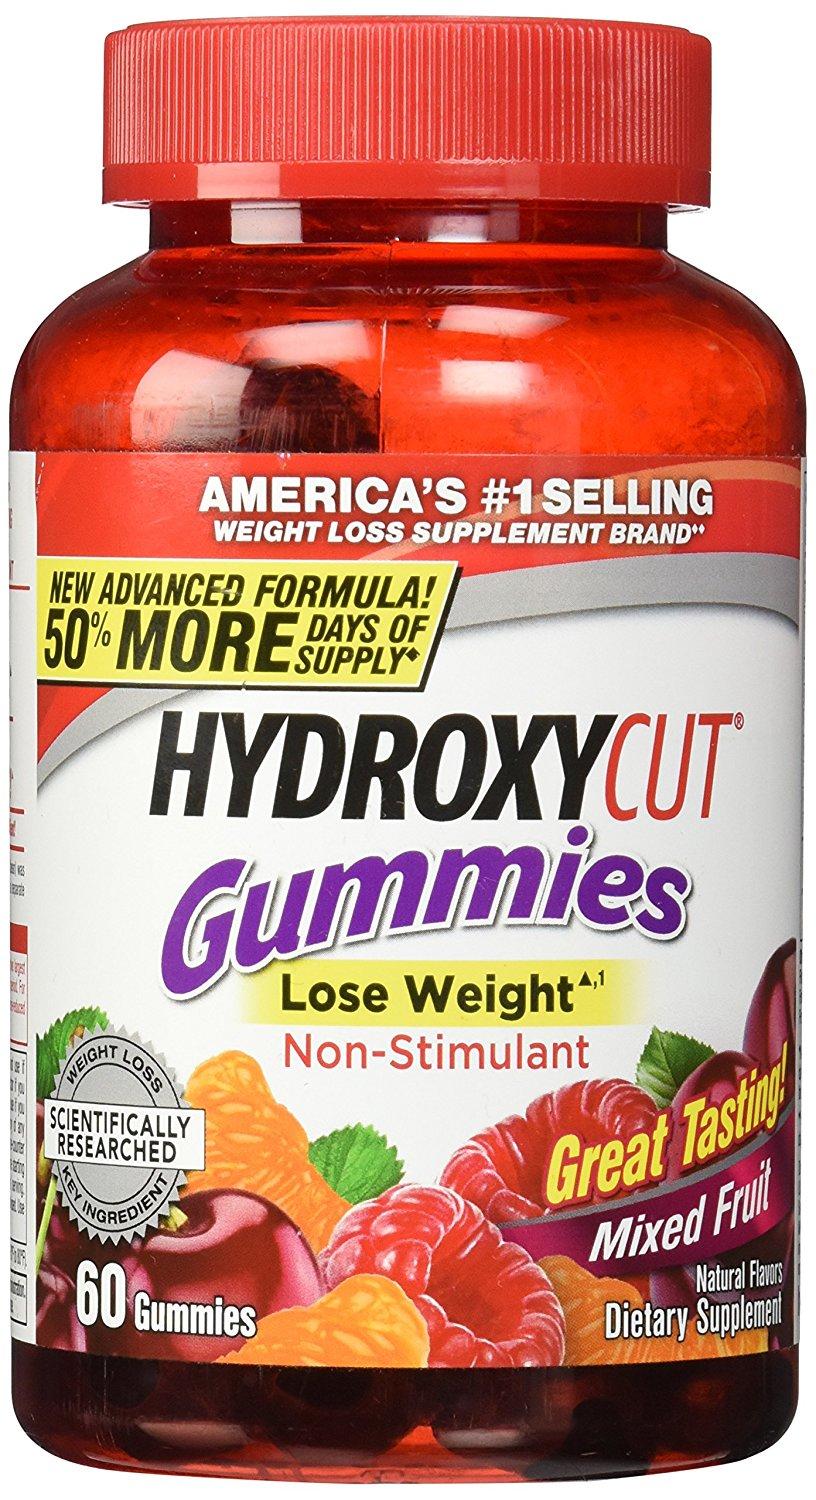 Catch22dating reviews on hydroxycut